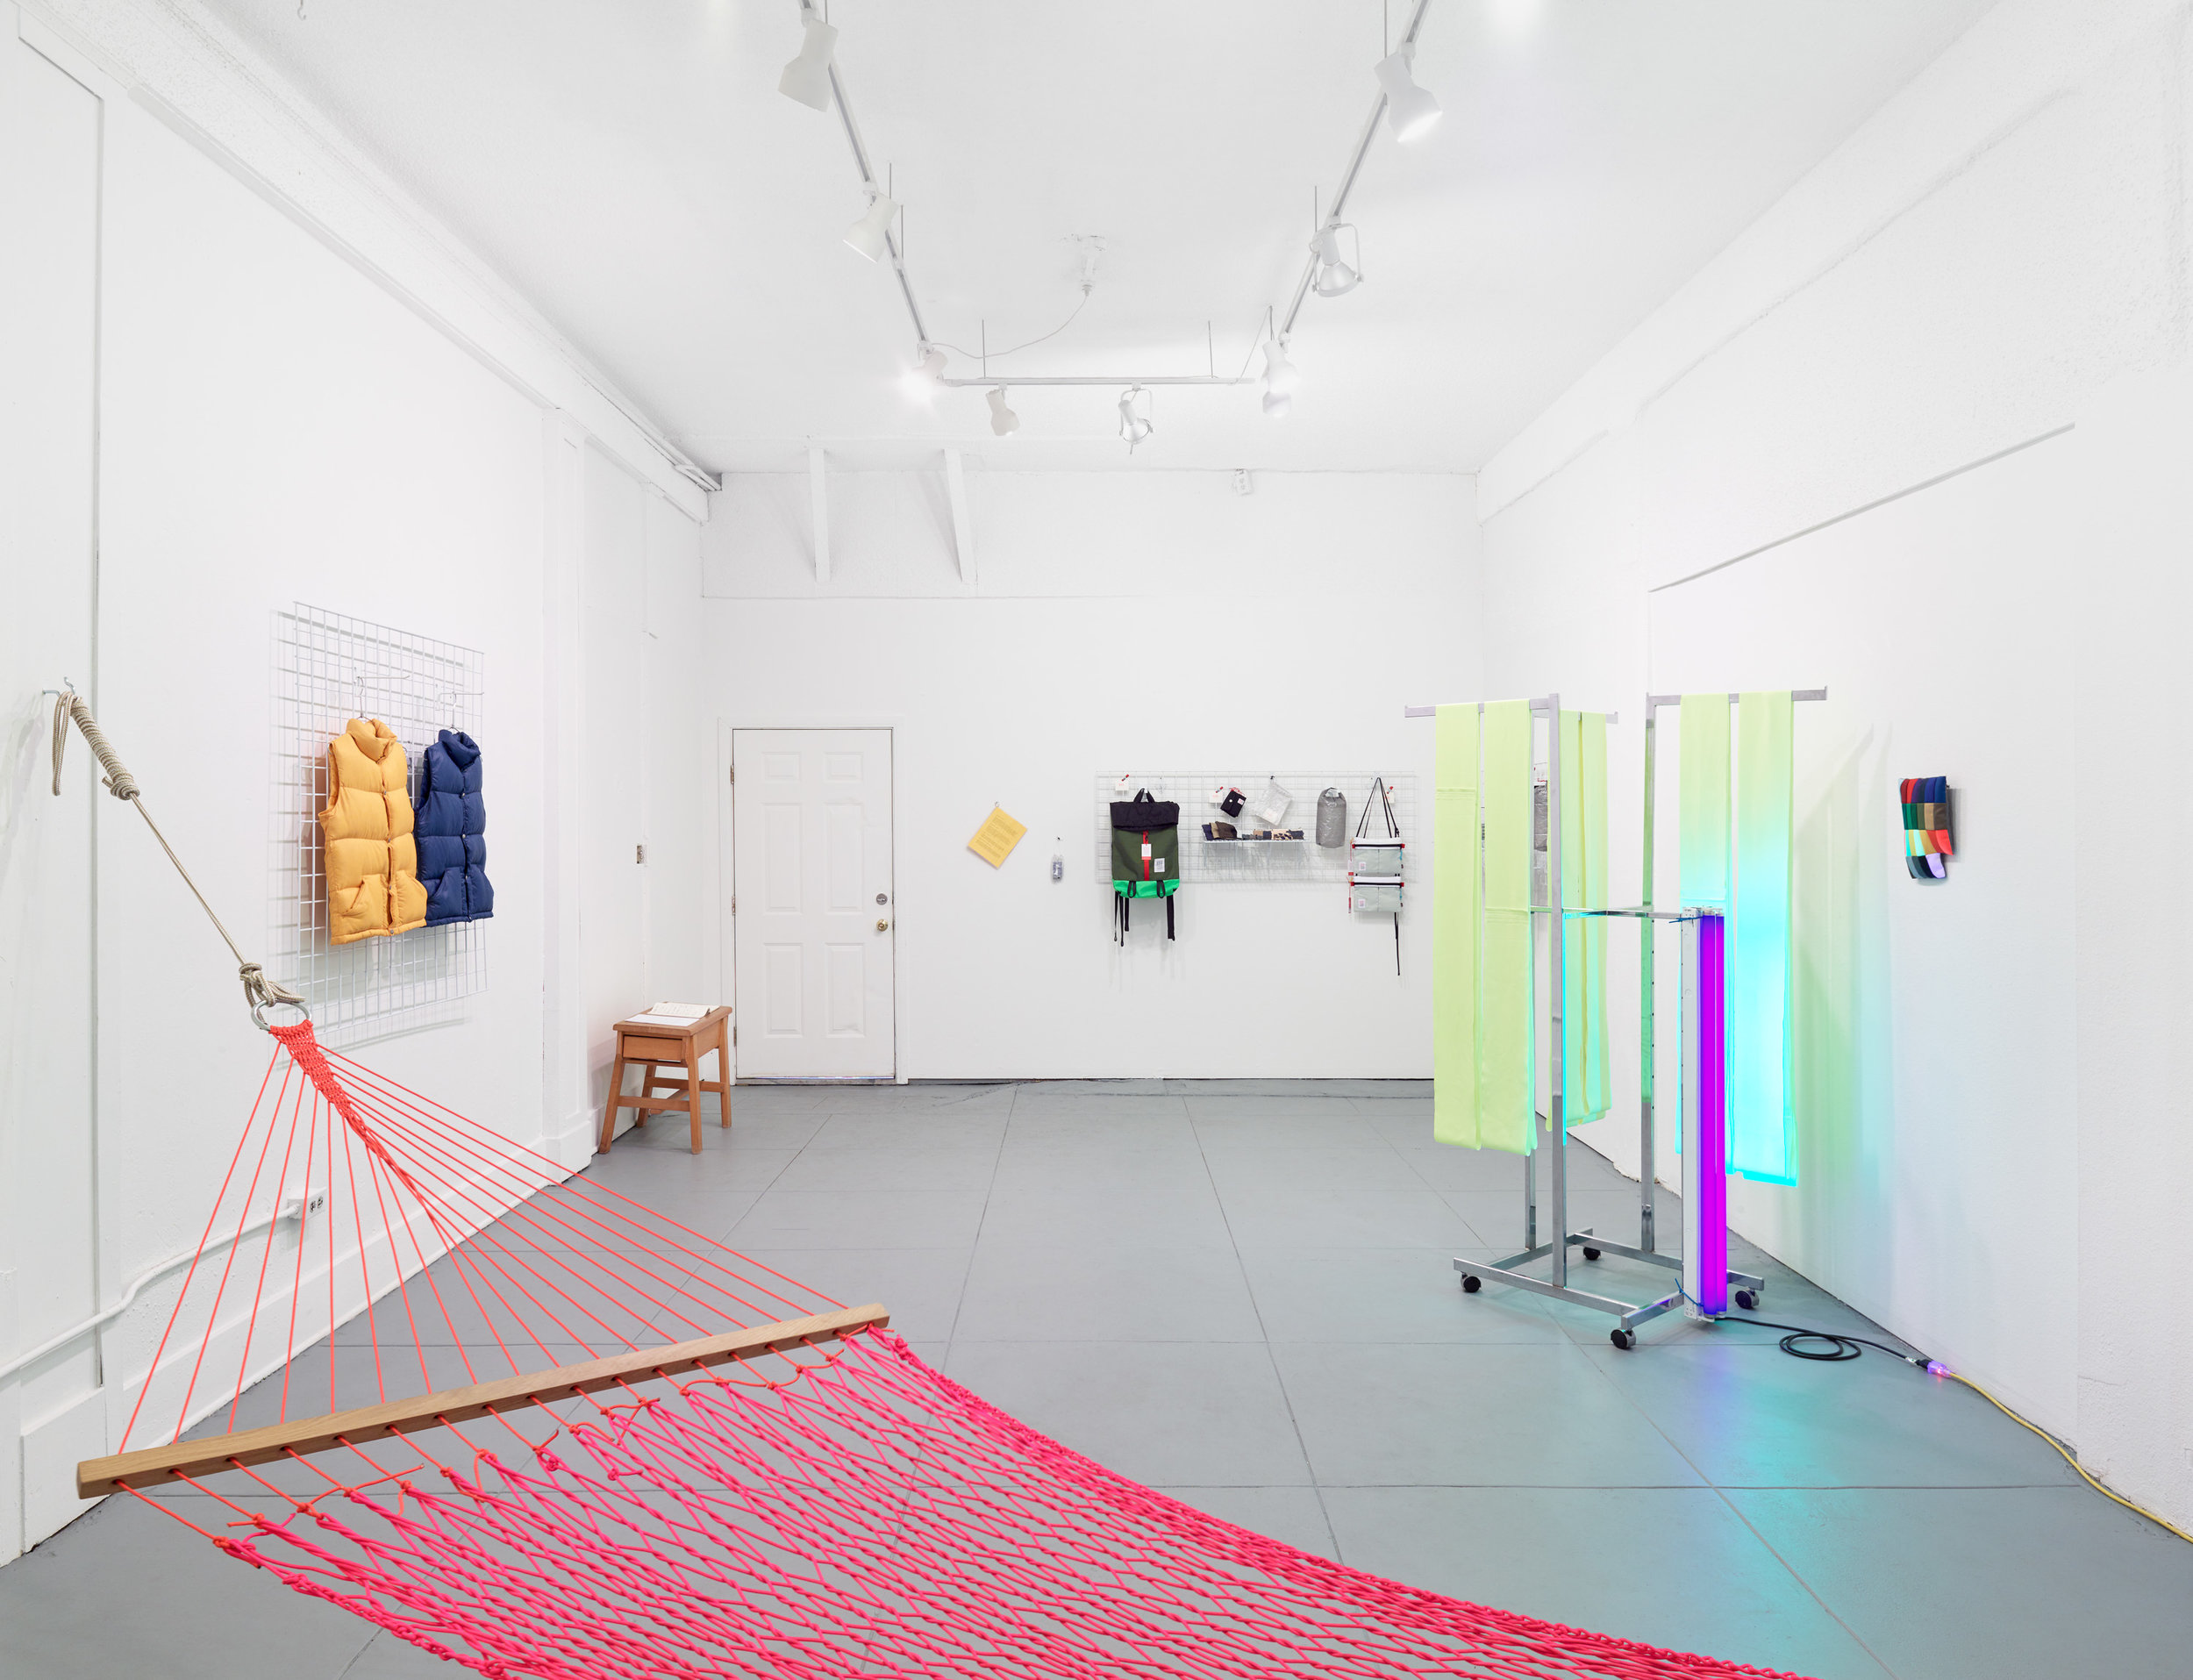 Installation view of  Pangaea at Household . Corrina Peipon and Krysten Cunningham at Household, Los Angeles, CA. March 11-April 22, 2018.